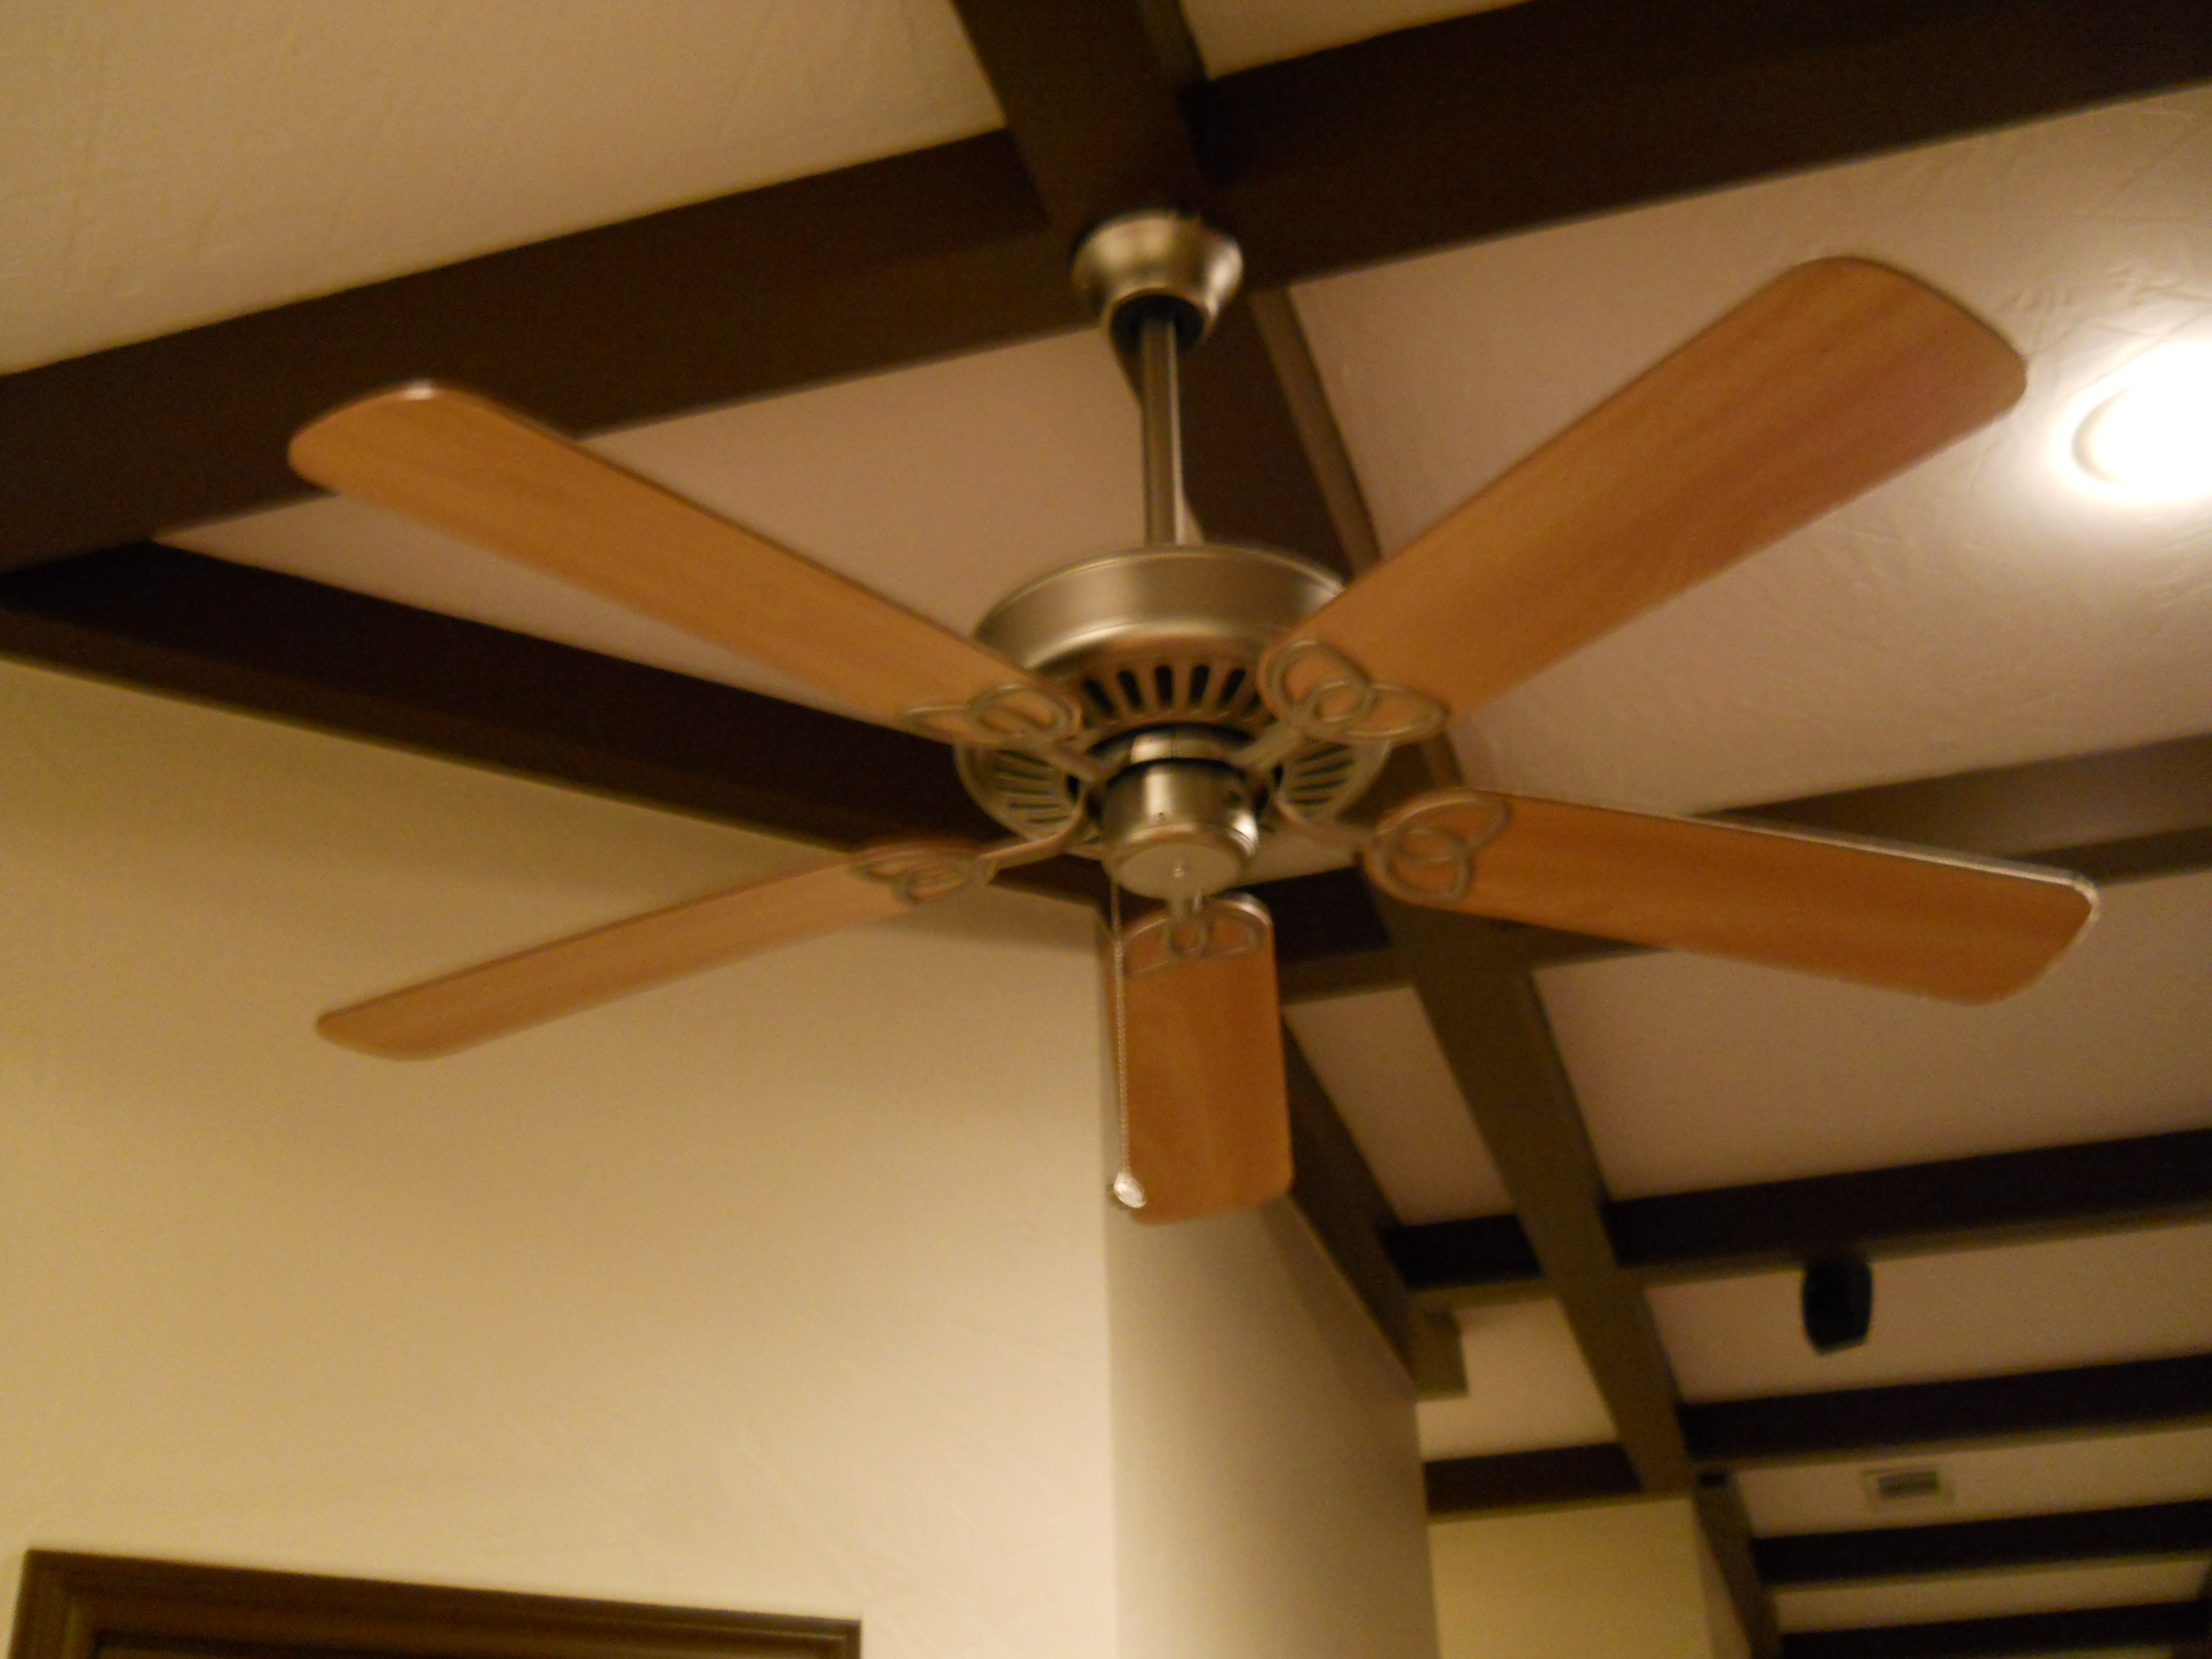 Ceiling Fan Belt Pulley Uncrafty Engineer Adventures And Misadventures Of An